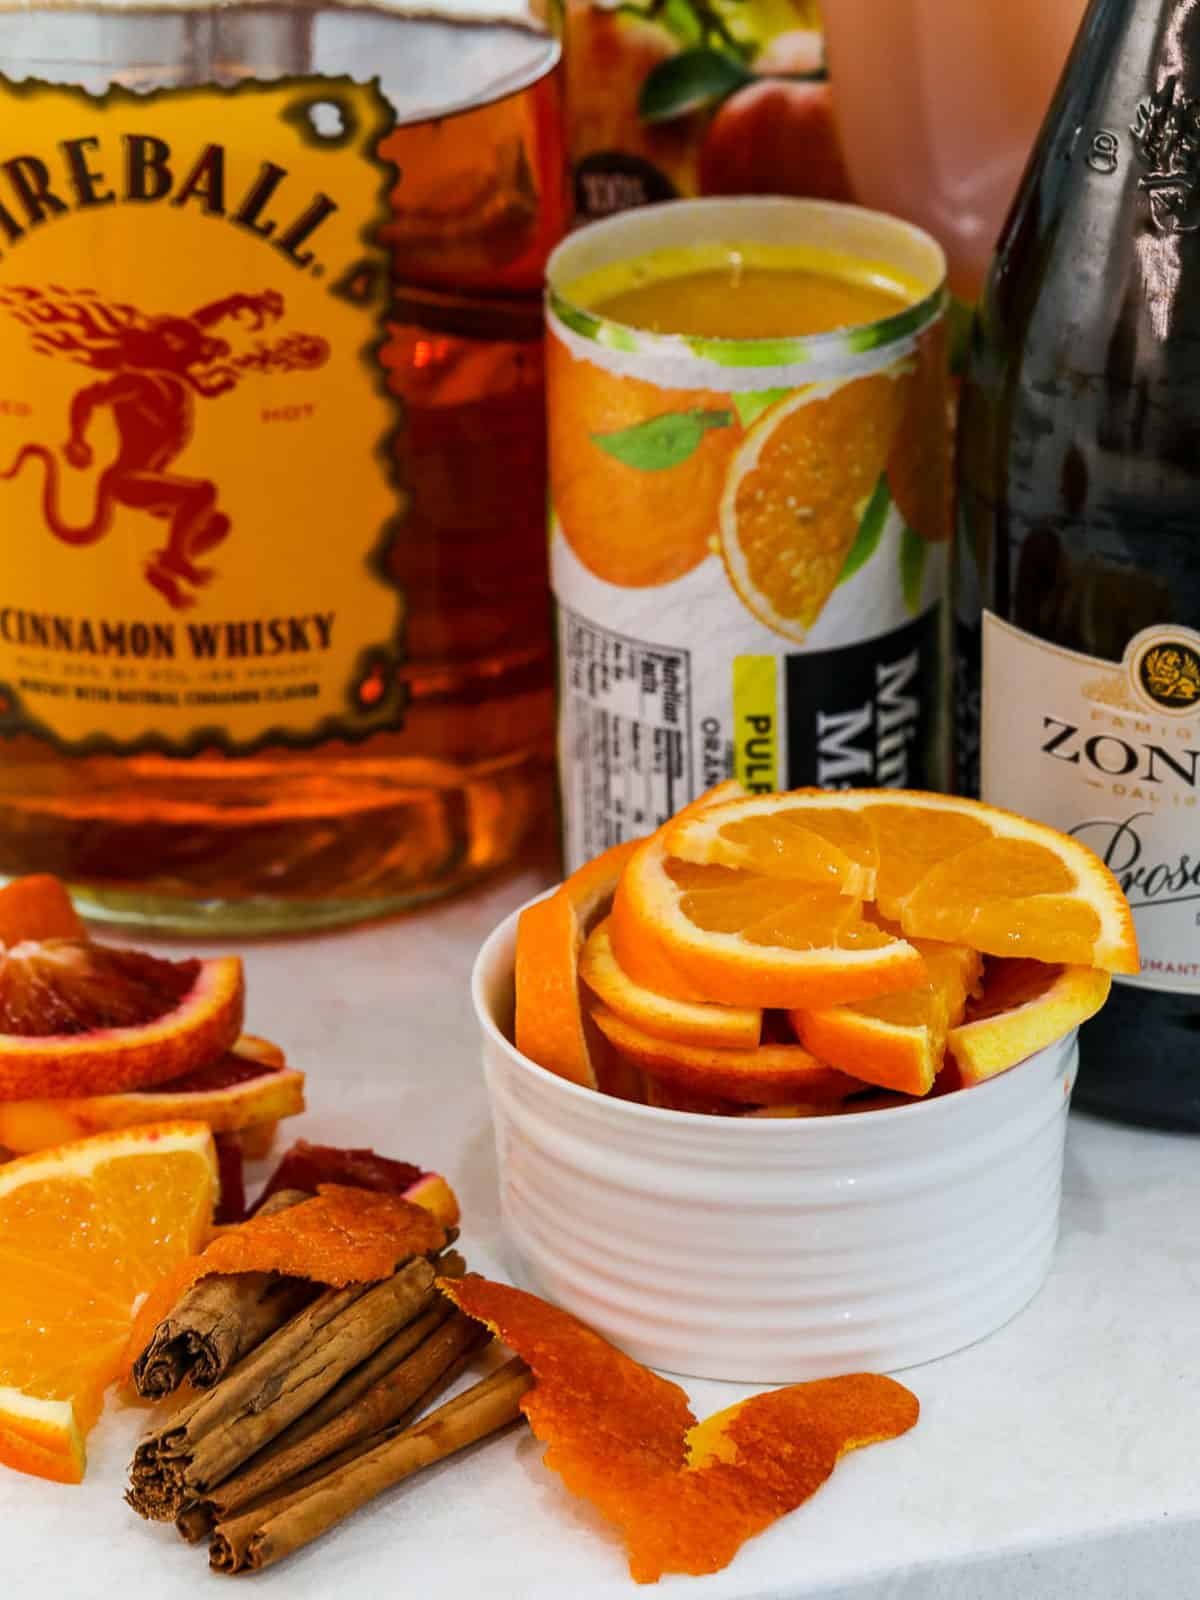 Ingredients to make Fireball punch; orange juice concentrate, Prosecco, Fireball Whisky, and apple cider.